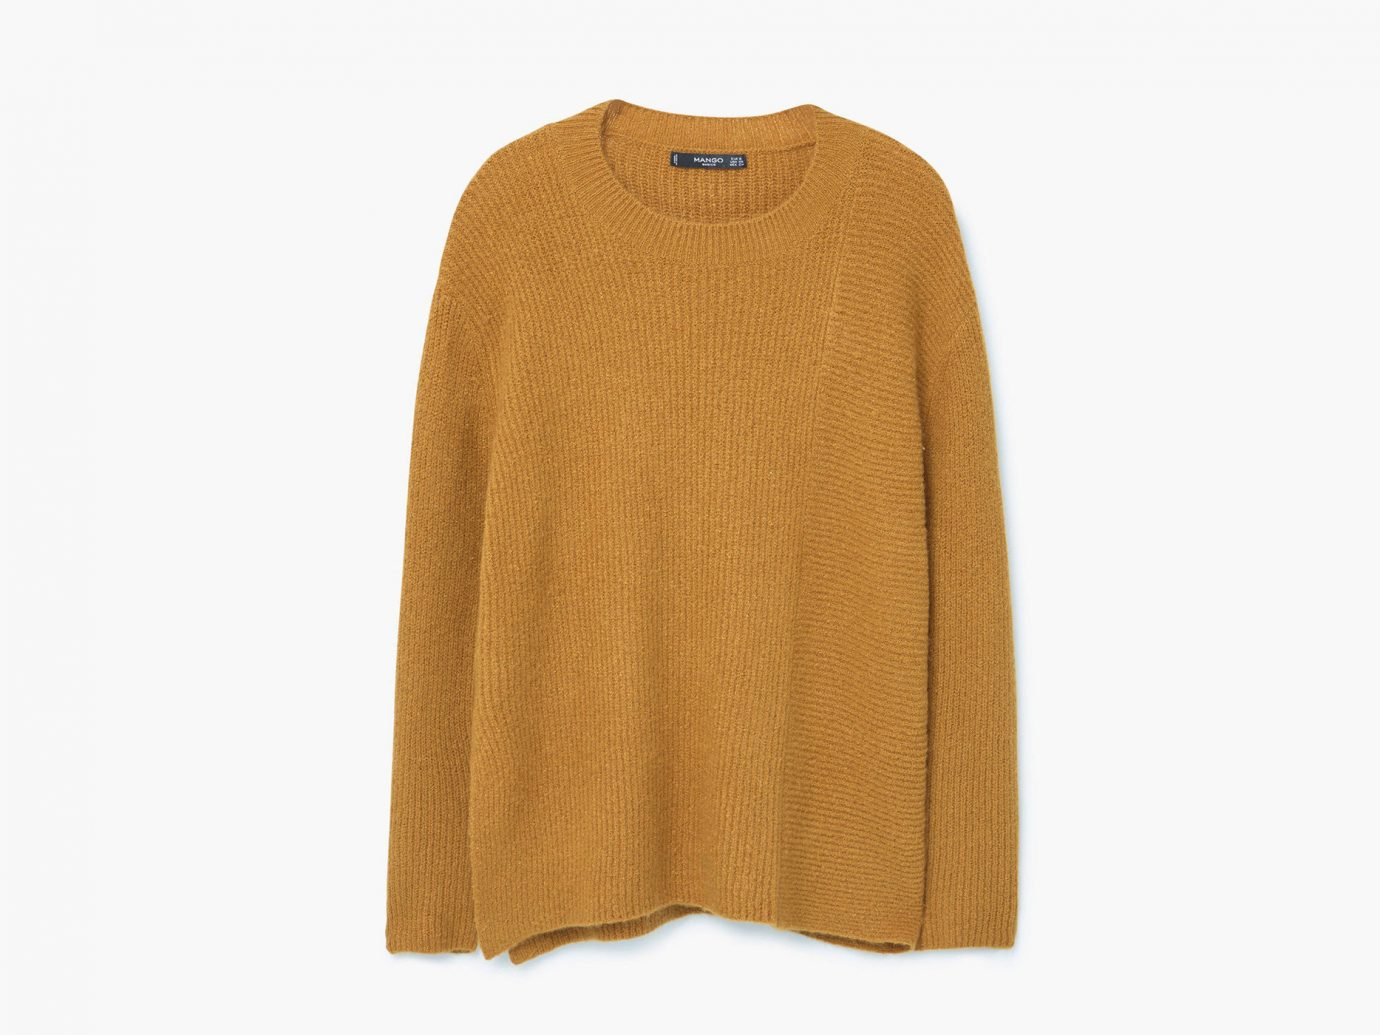 Style + Design clothing sweater outerwear sleeve pocket wool neck beige textile collar